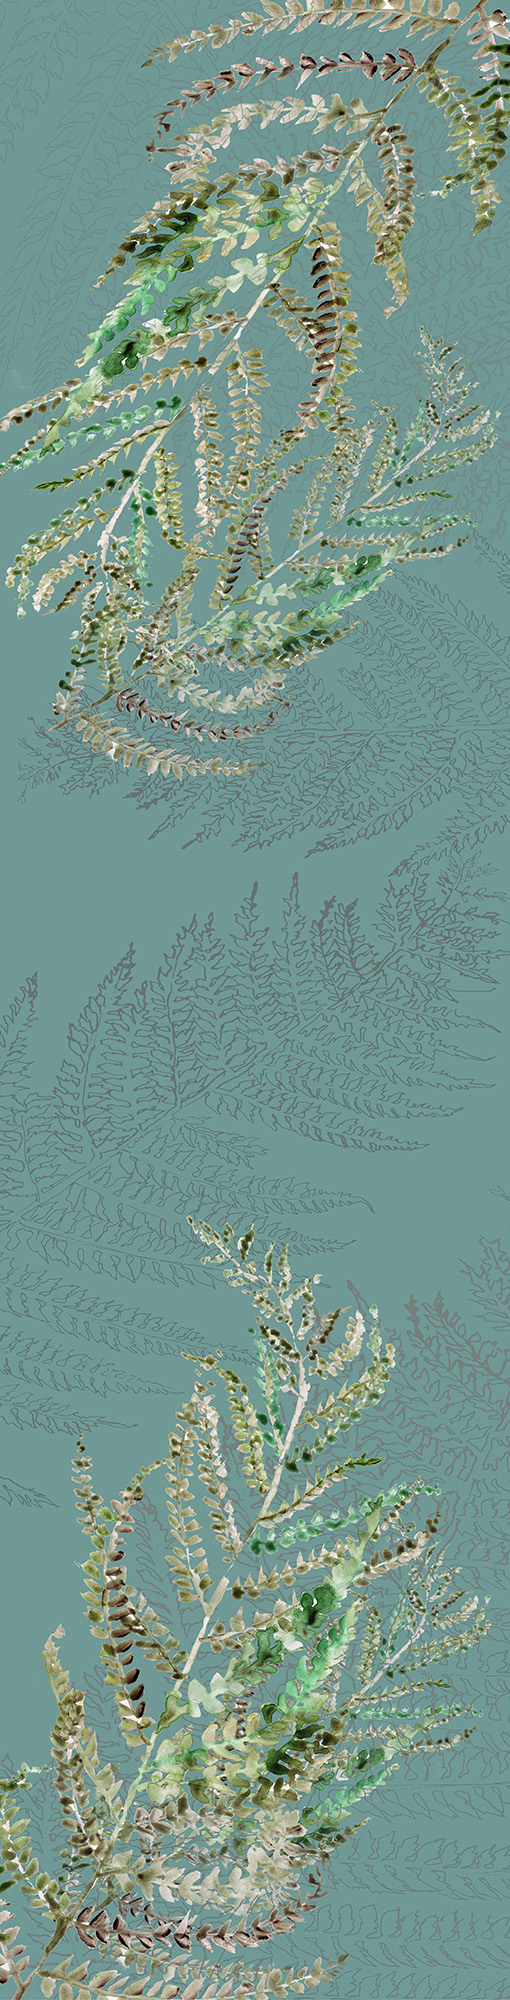 Digital print on Irish linen.  Inspired by Meath hedgerows, drawings and watercolour paintings of ferns..  178 cm X 47 cm